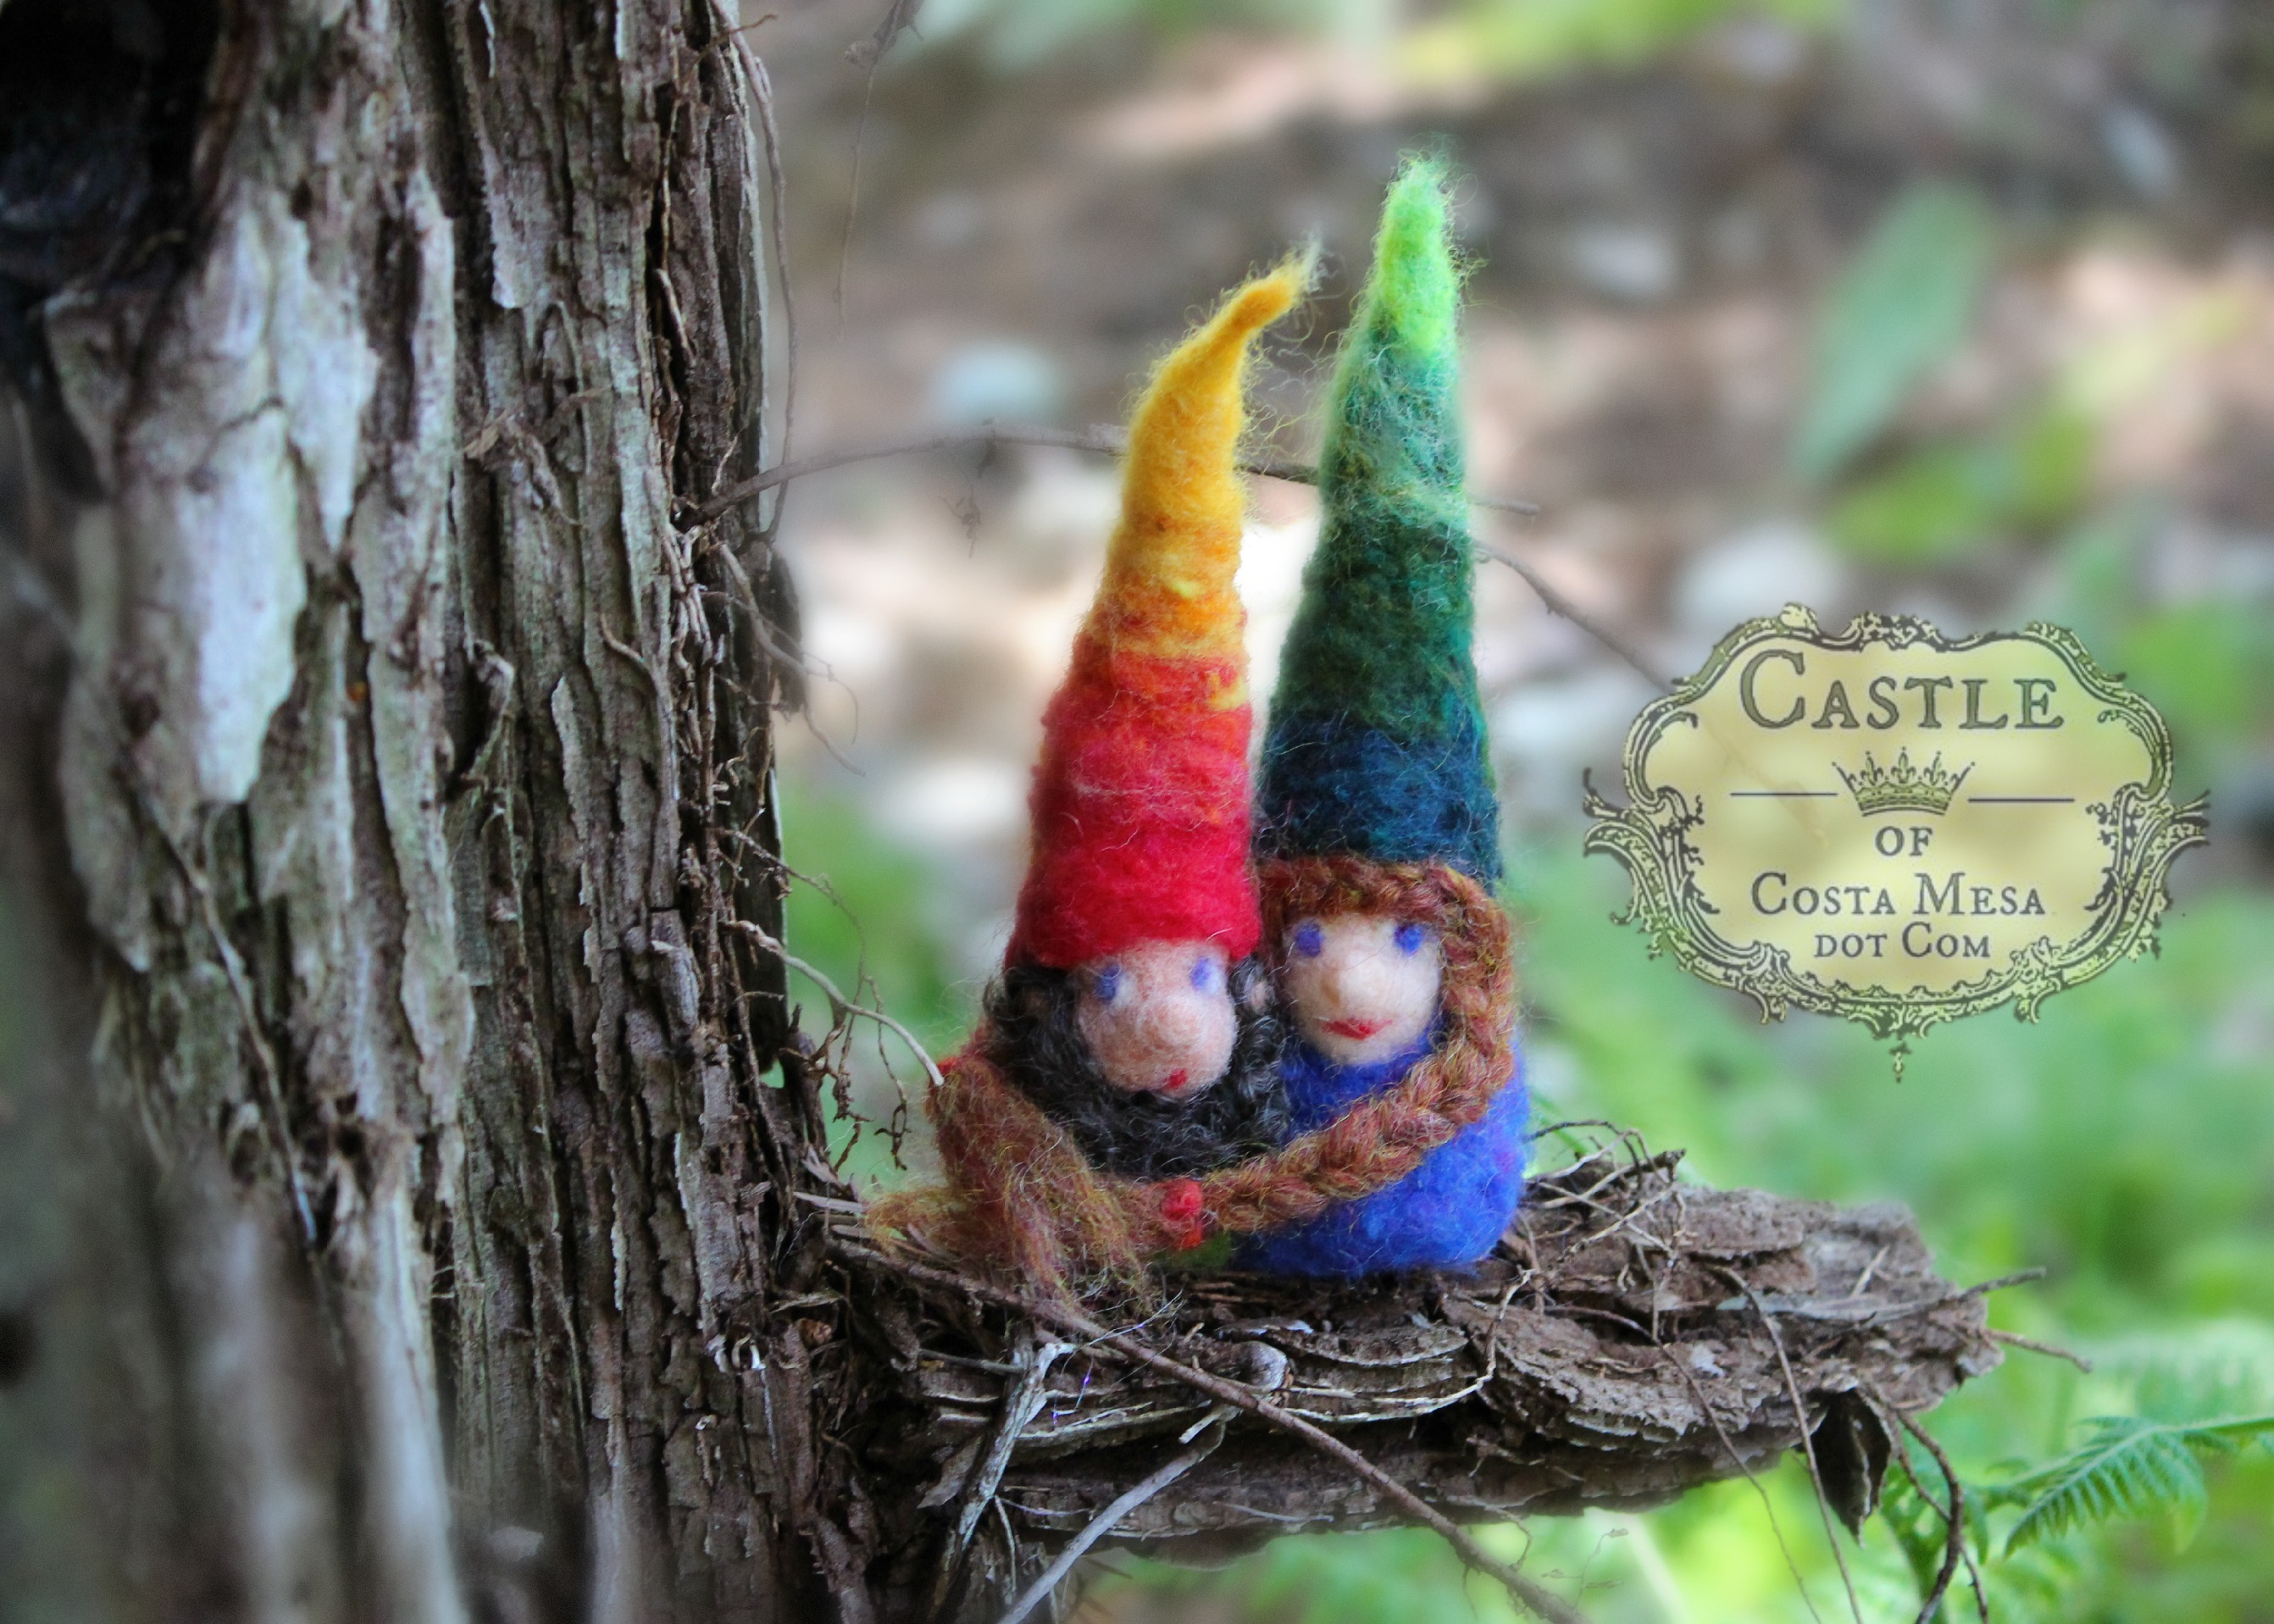 140730 Finger warmer gnomes Eddie and Ruth at ENC on a limb 2